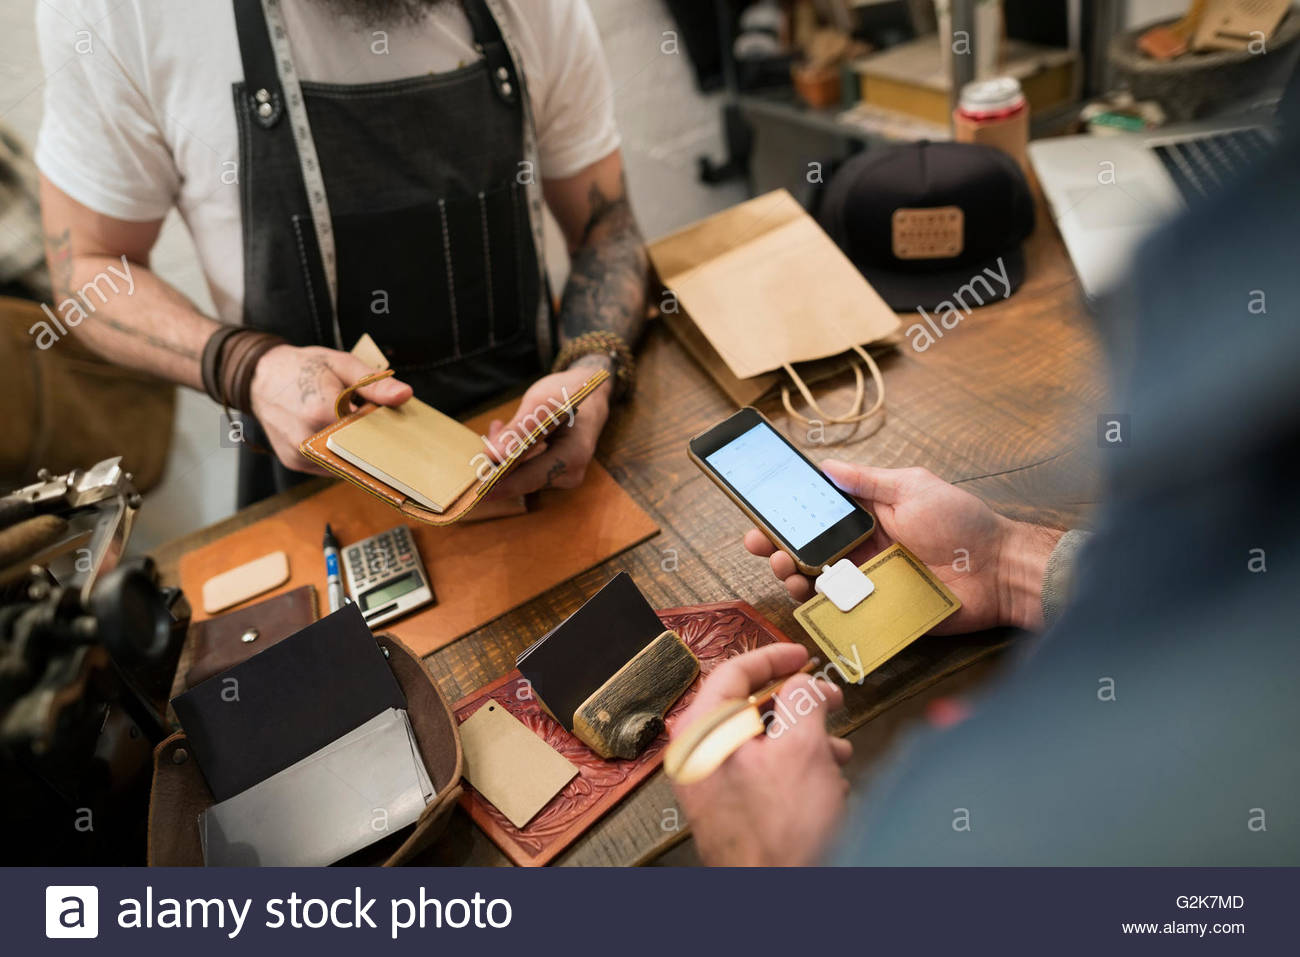 Customer using credit card reader in leather shop - Stock Image